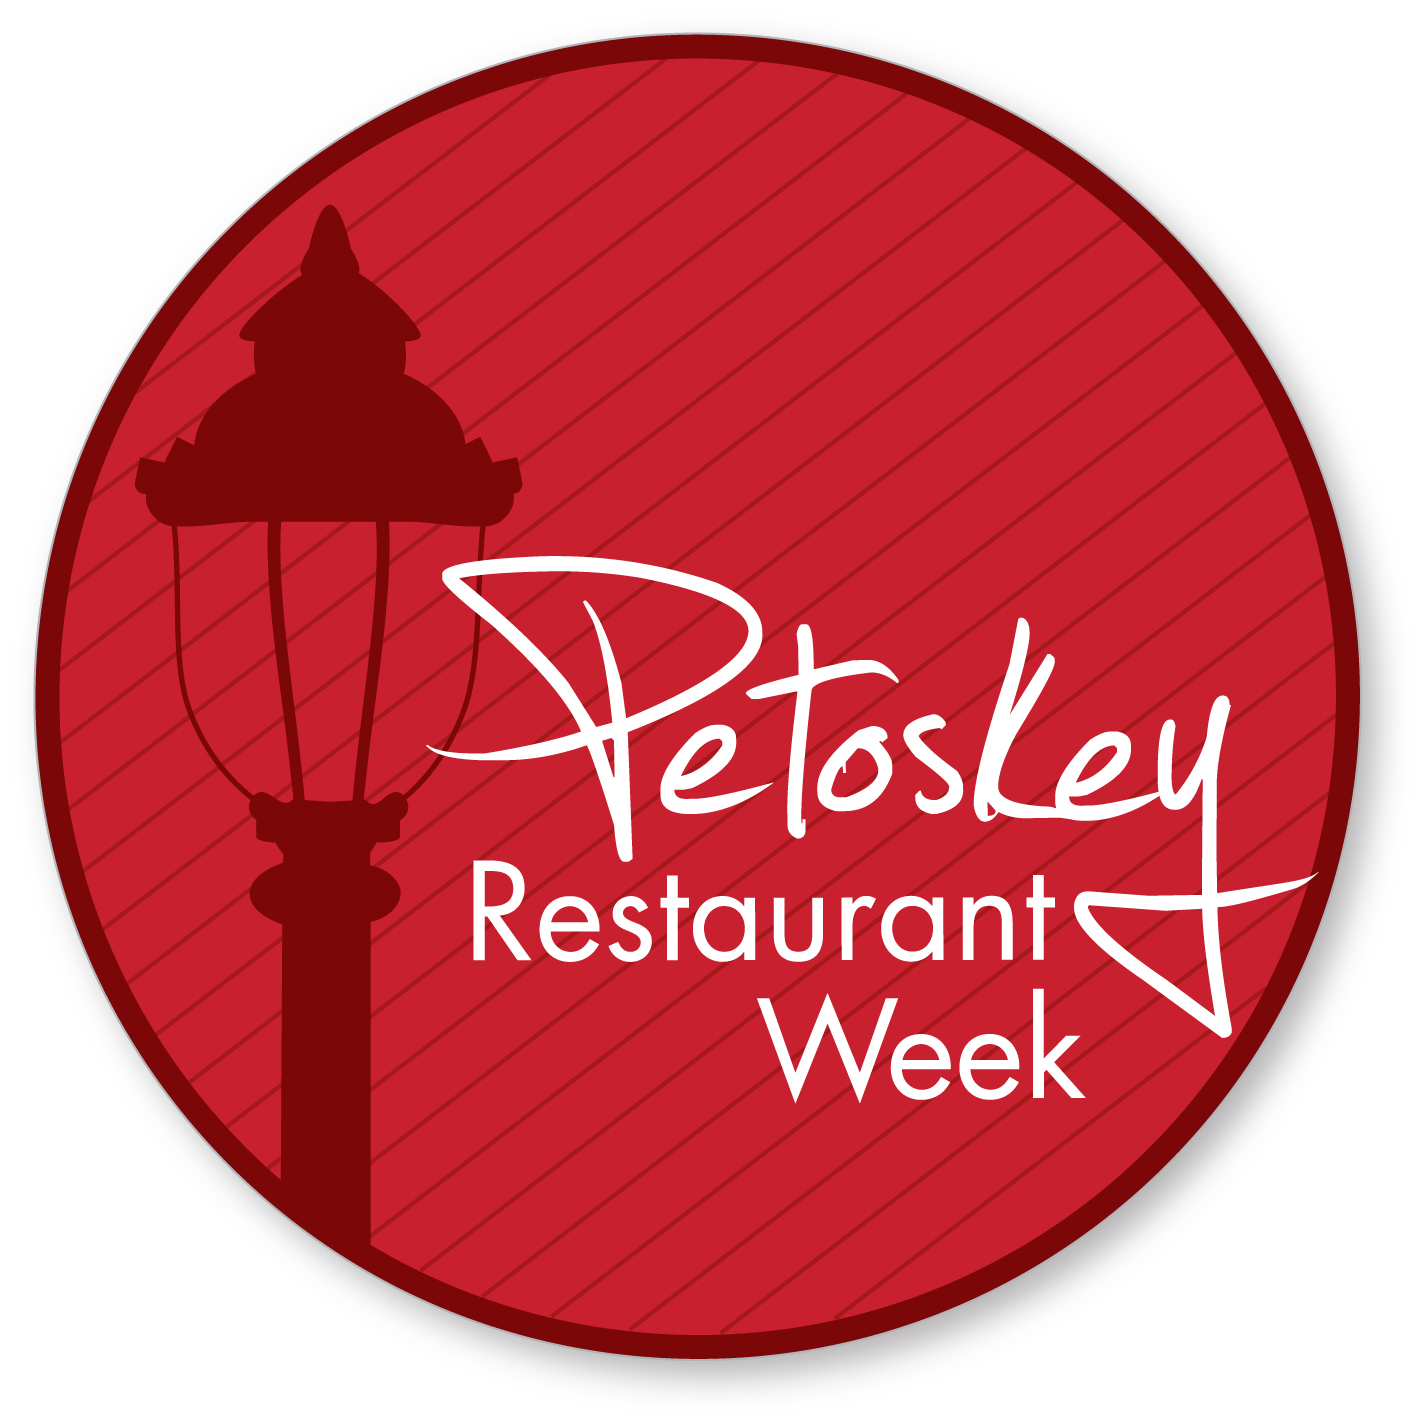 Petoskey_Restaurant_Week_-_logo.jpg